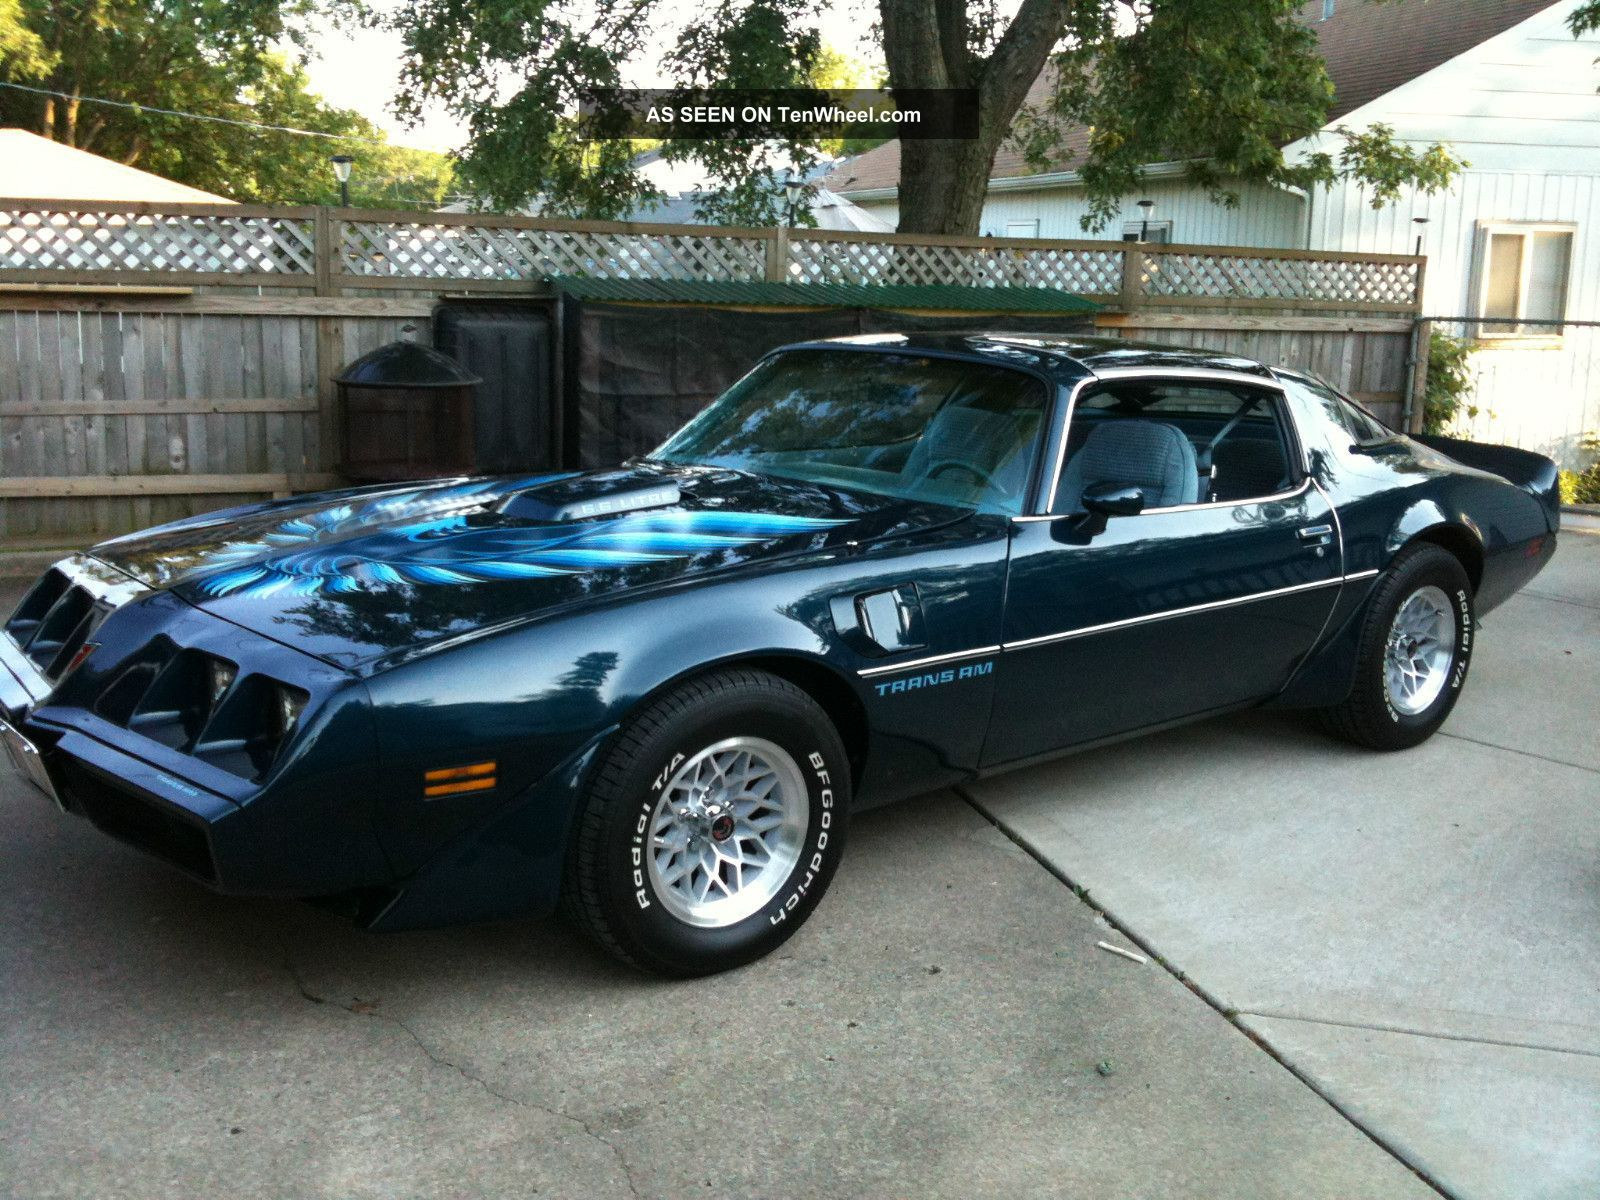 1979 Trans Am Picture 1979 Pontiac Turbo Trans Am Long Lives The Eagle Firebird